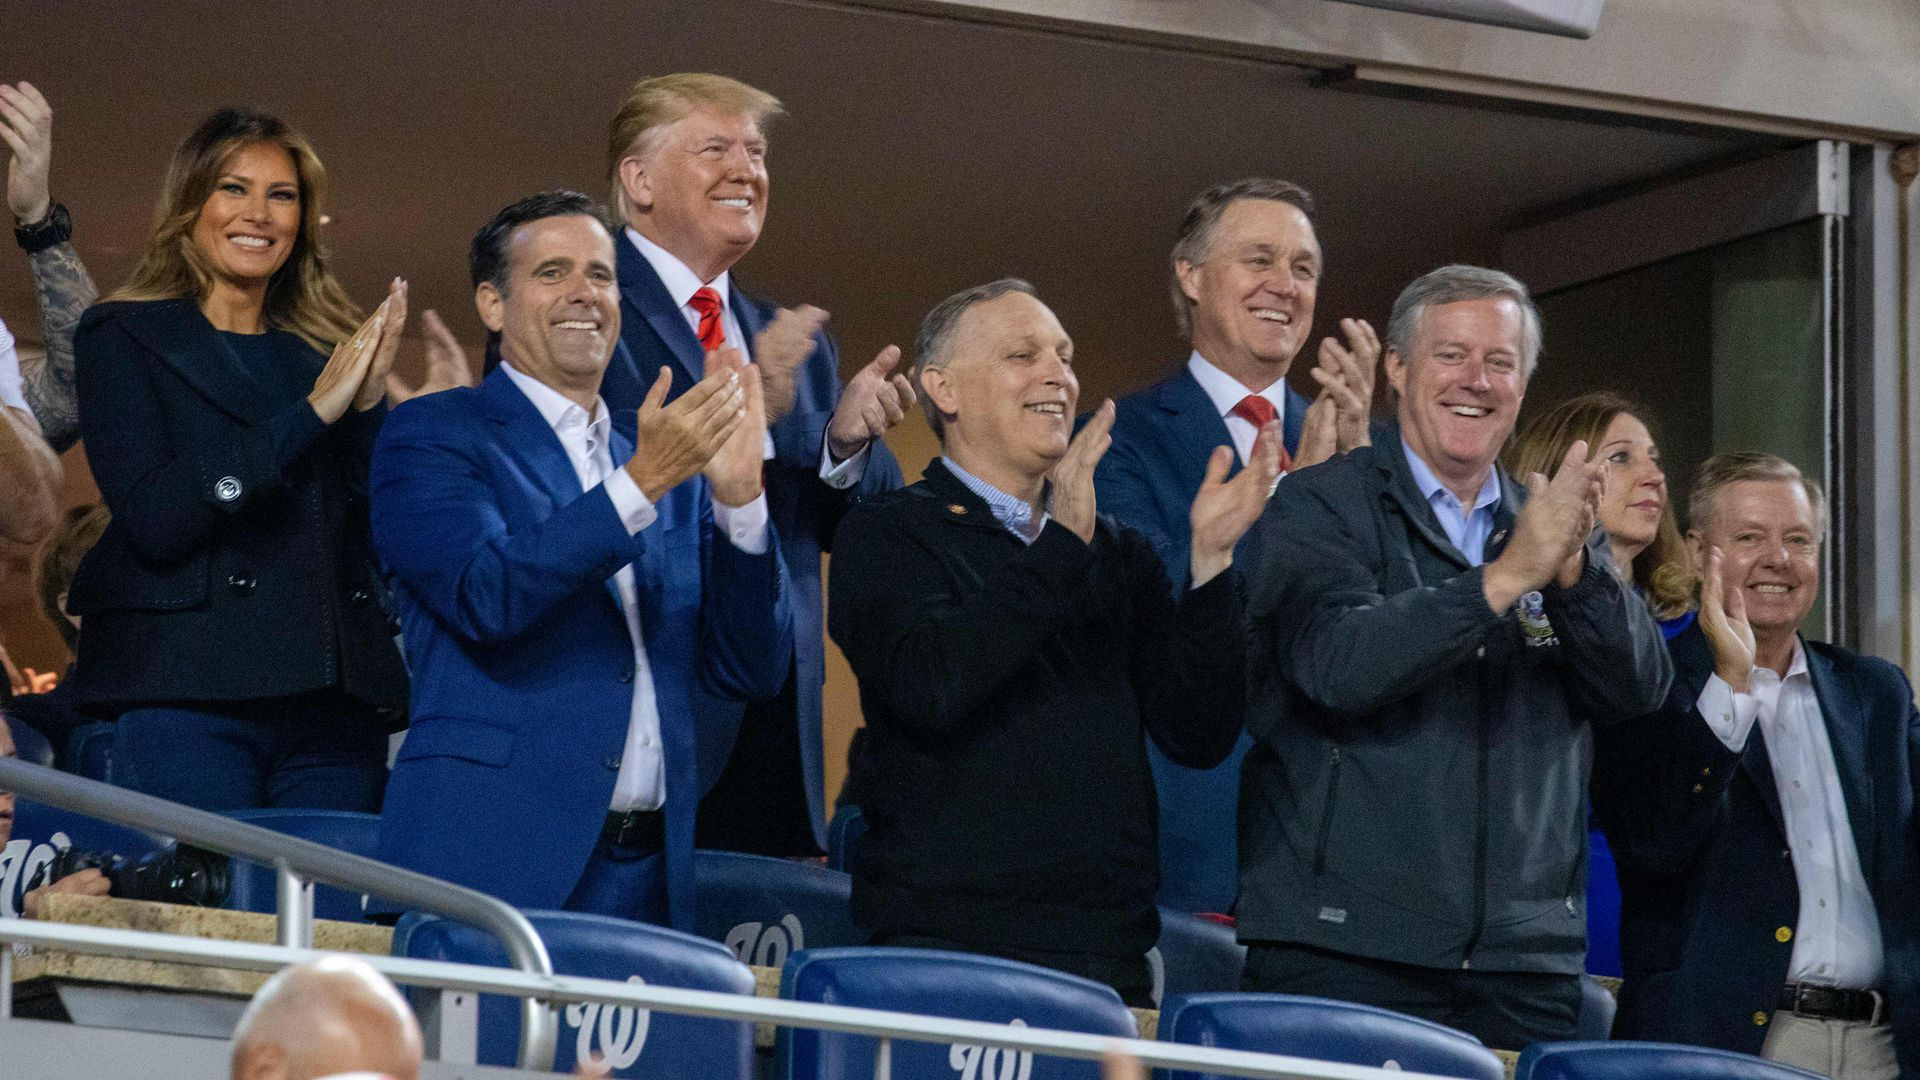 US President Donald Trump (C) and First Lady Melania Trump (2L) with Republican lawmakers during the World Series between the Washington Nationals and Houston Astros